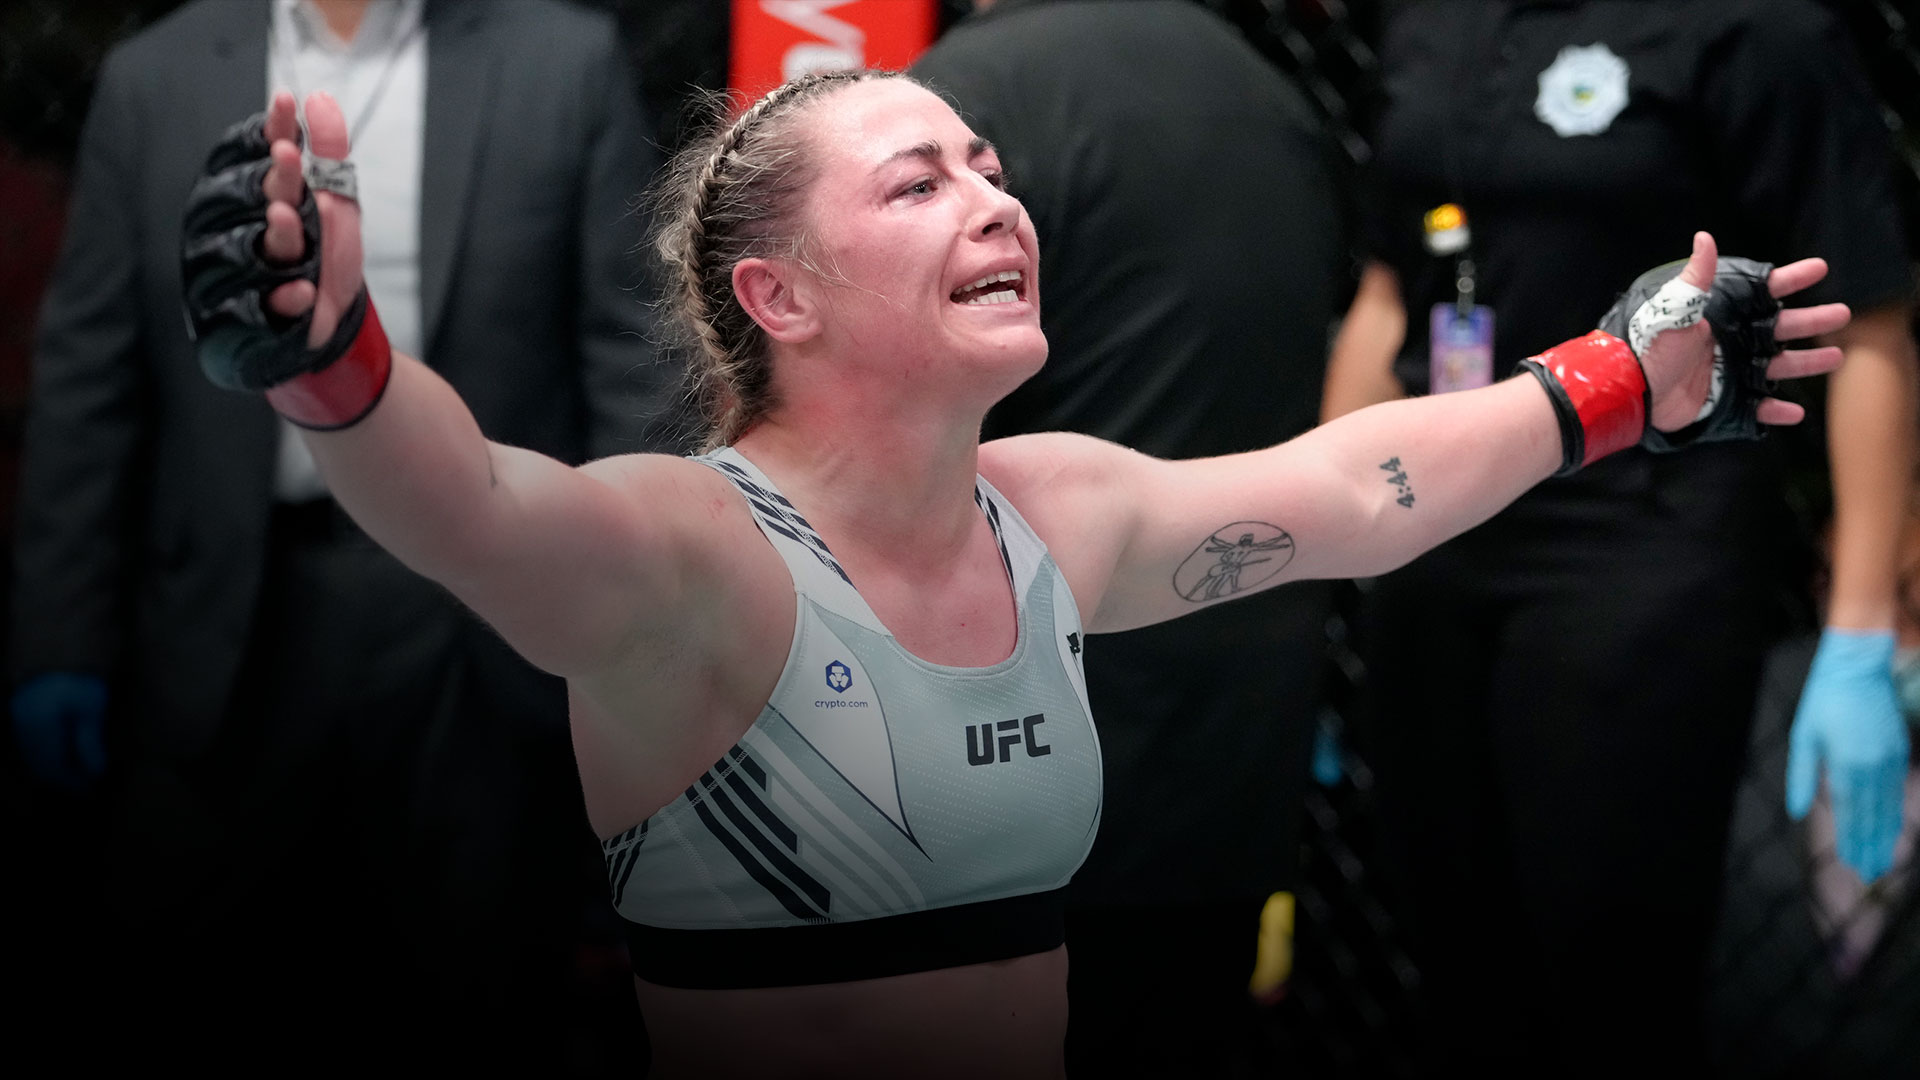 Molly McCann of England reacts after the conclusion of her flyweight fight against Ji Yeon Kim of South Korea during the UFC Fight Night event at UFC APEX on September 04, 2021 in Las Vegas, Nevada. (Photo by Jeff Bottari/Zuffa LLC)